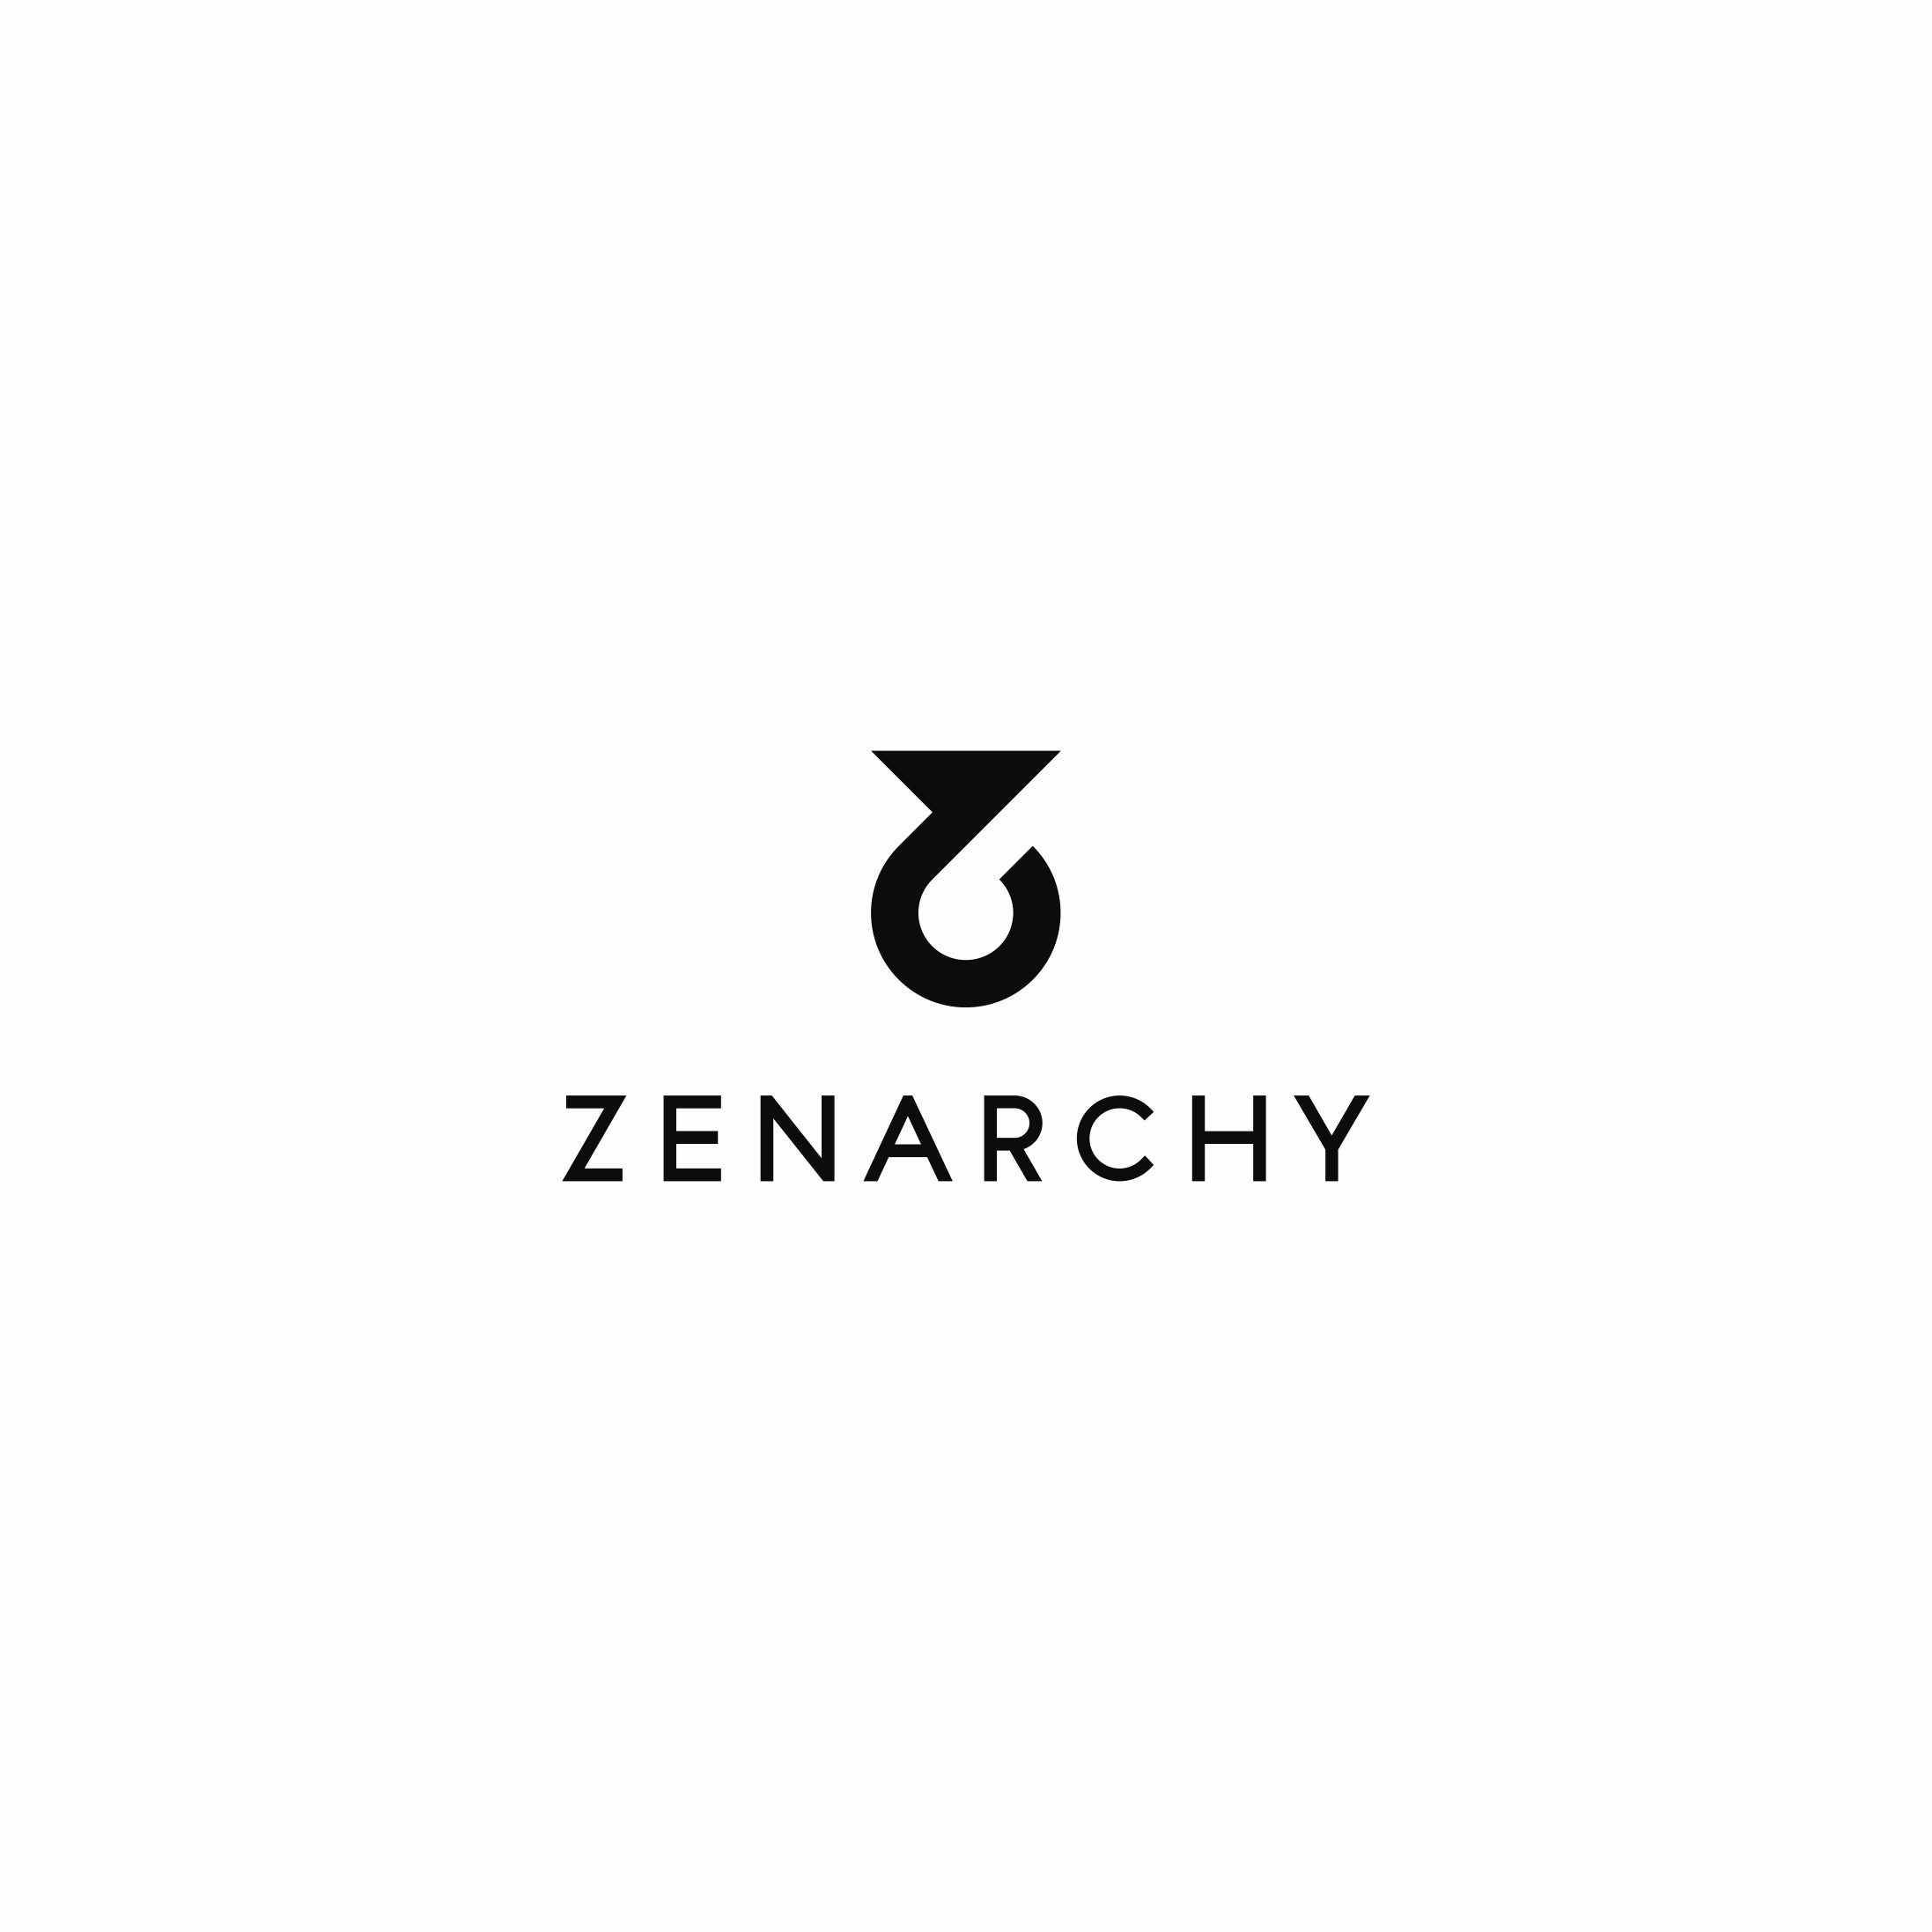 Logo needed for melodic prog rock band ZenarchY